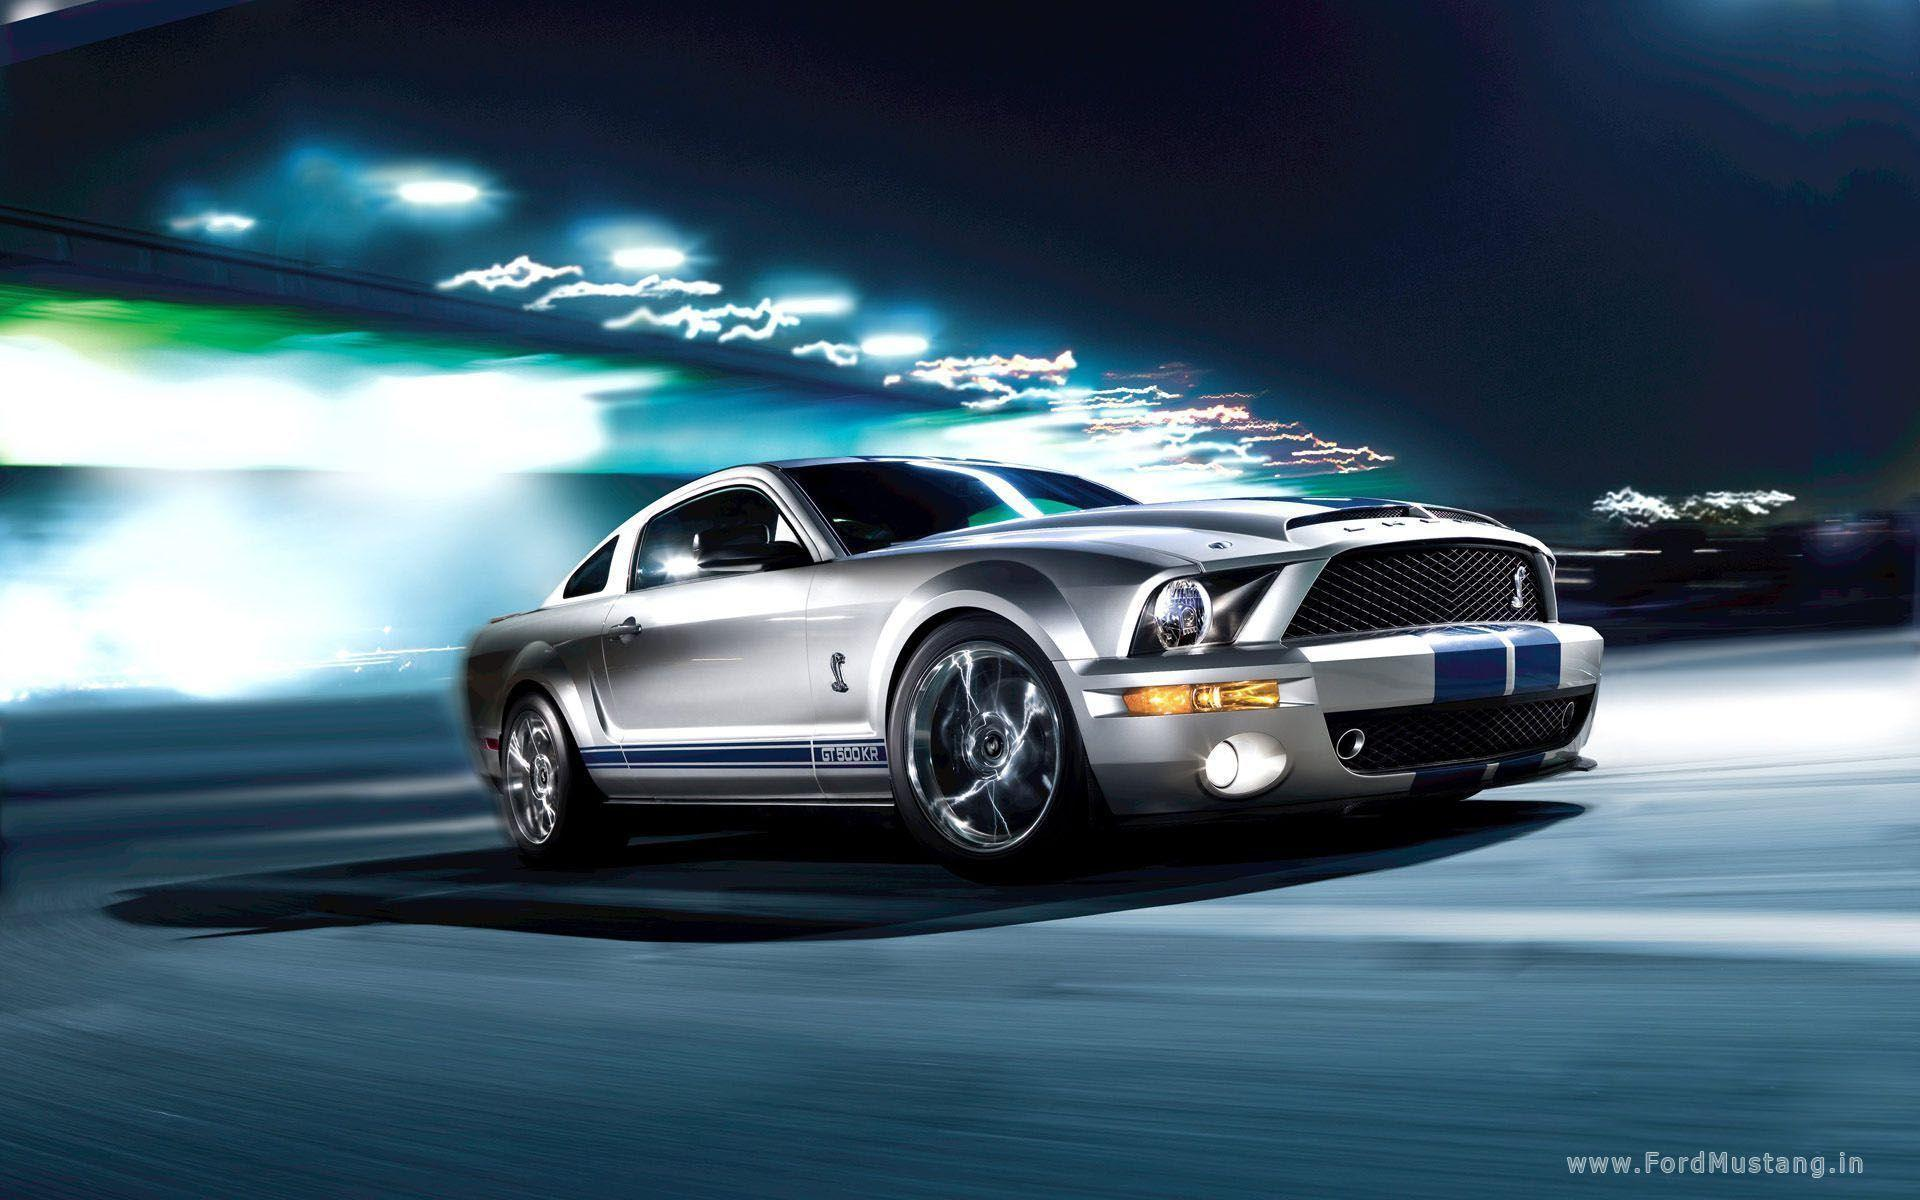 Mustang Wallpaper Hd Background Wallpaper 28 HD Wallpapers | www.